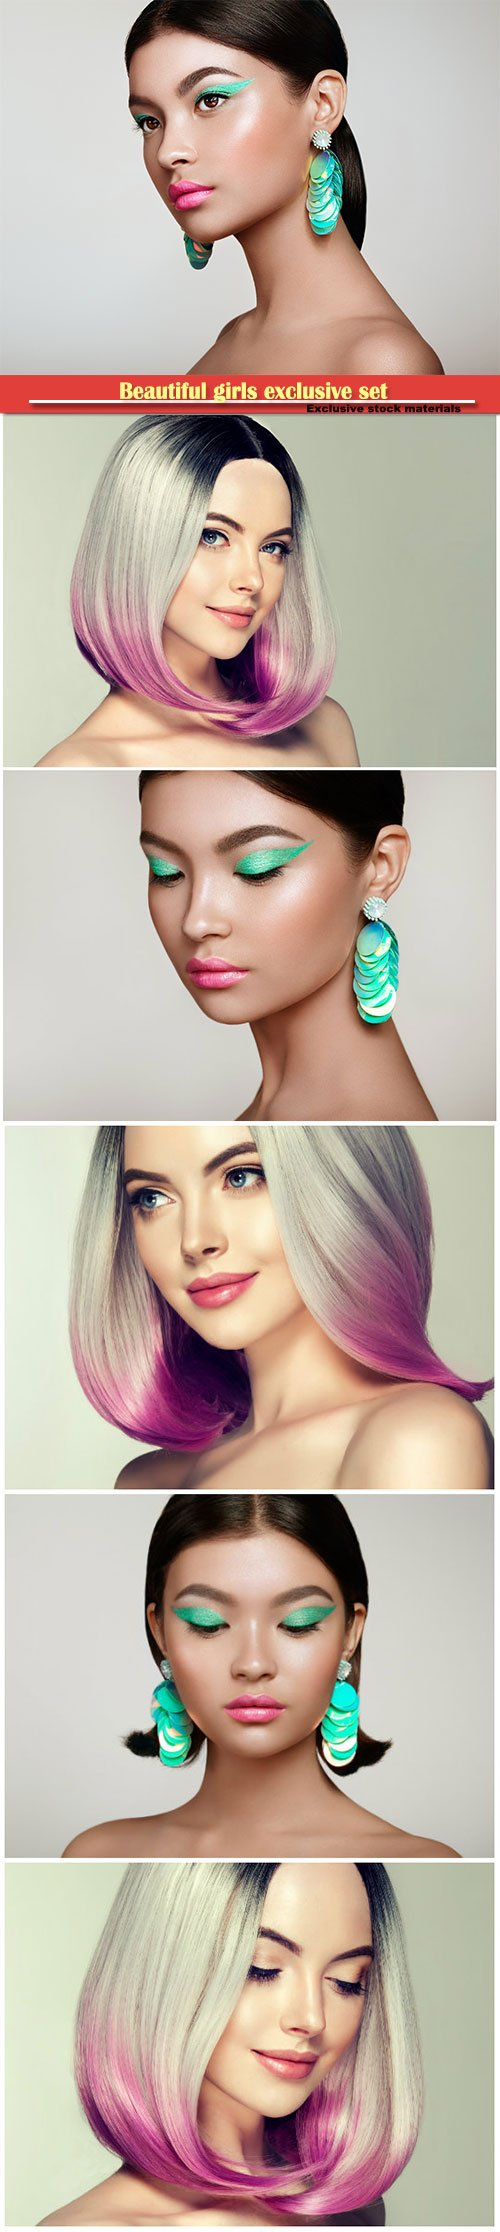 Fashion girls with makeup and dyed hair